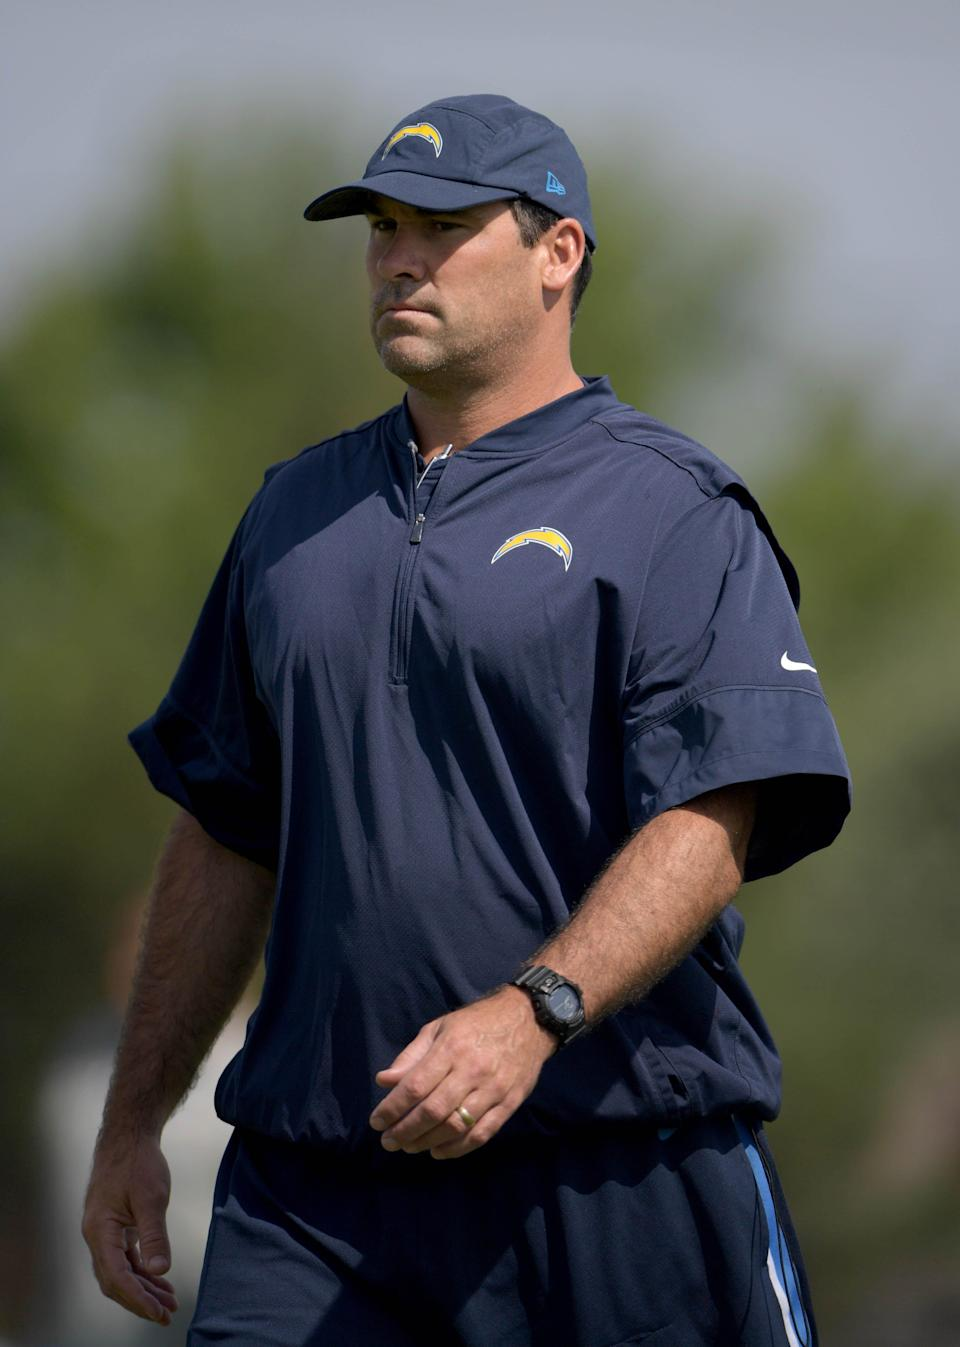 Chargers assistant offensive line coach James Cregg reacts during the opening day of training camp at the Jack Hammett Sports Complex. (Kirby Lee, USA TODAY Sports)